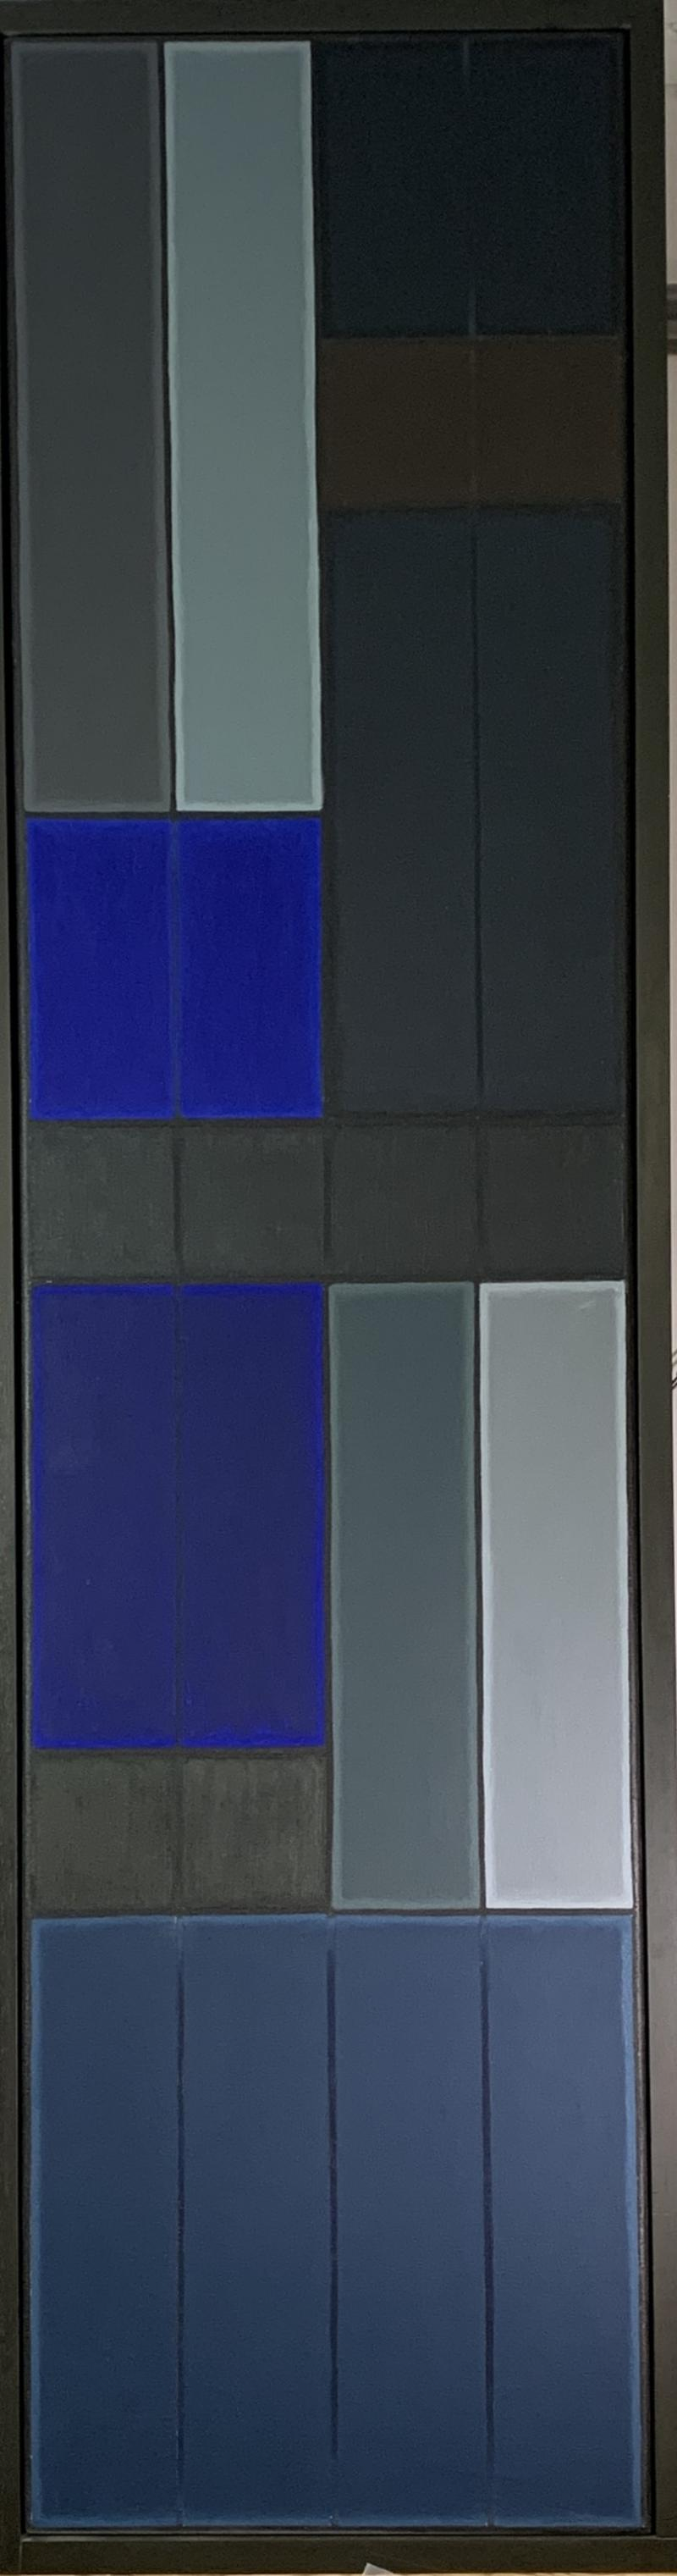 John Hopwood Untitled Blue Abstract Number 1 Geometric Oil Painting